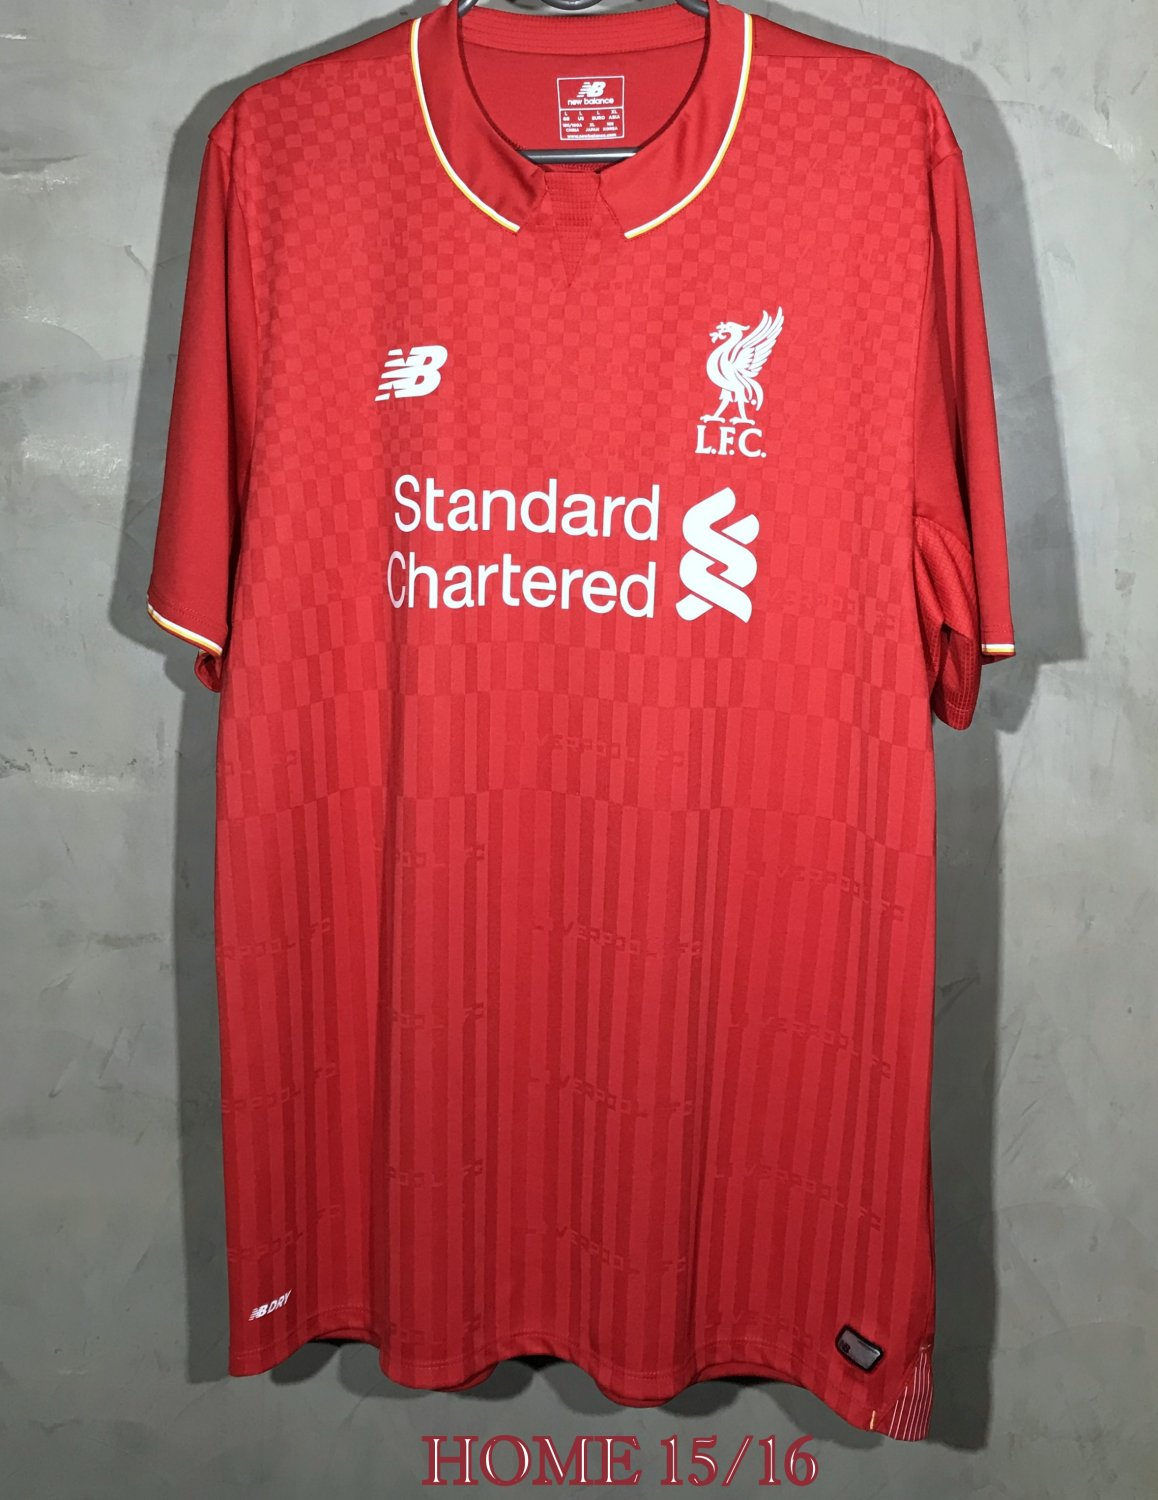 info for df7dd 4e2ad Liverpool Home football shirt 2015 - 2016. Sponsored by ...